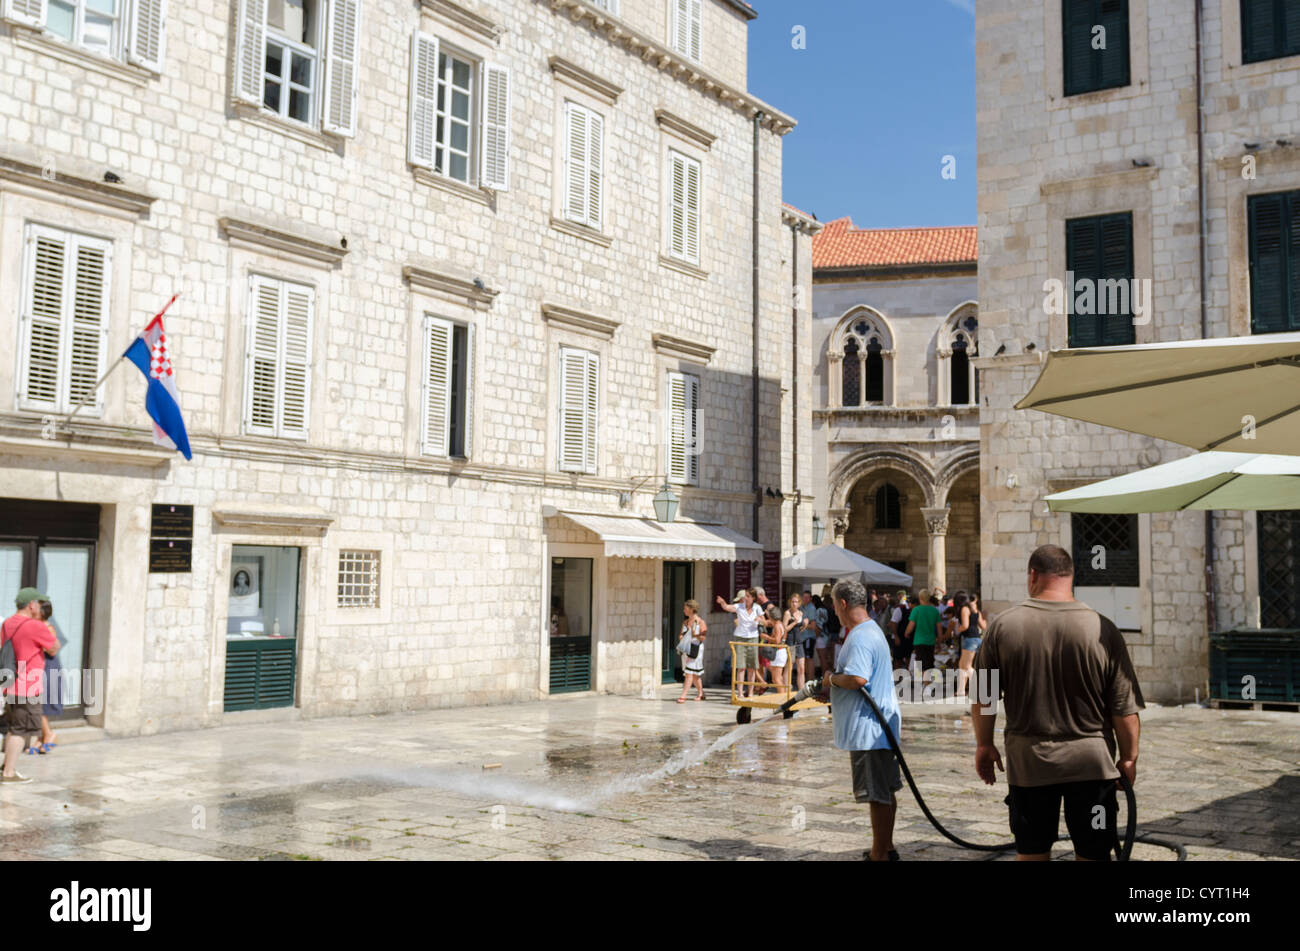 [nose piese] [water cannon] [old town] Dubrovnik - Stock Image